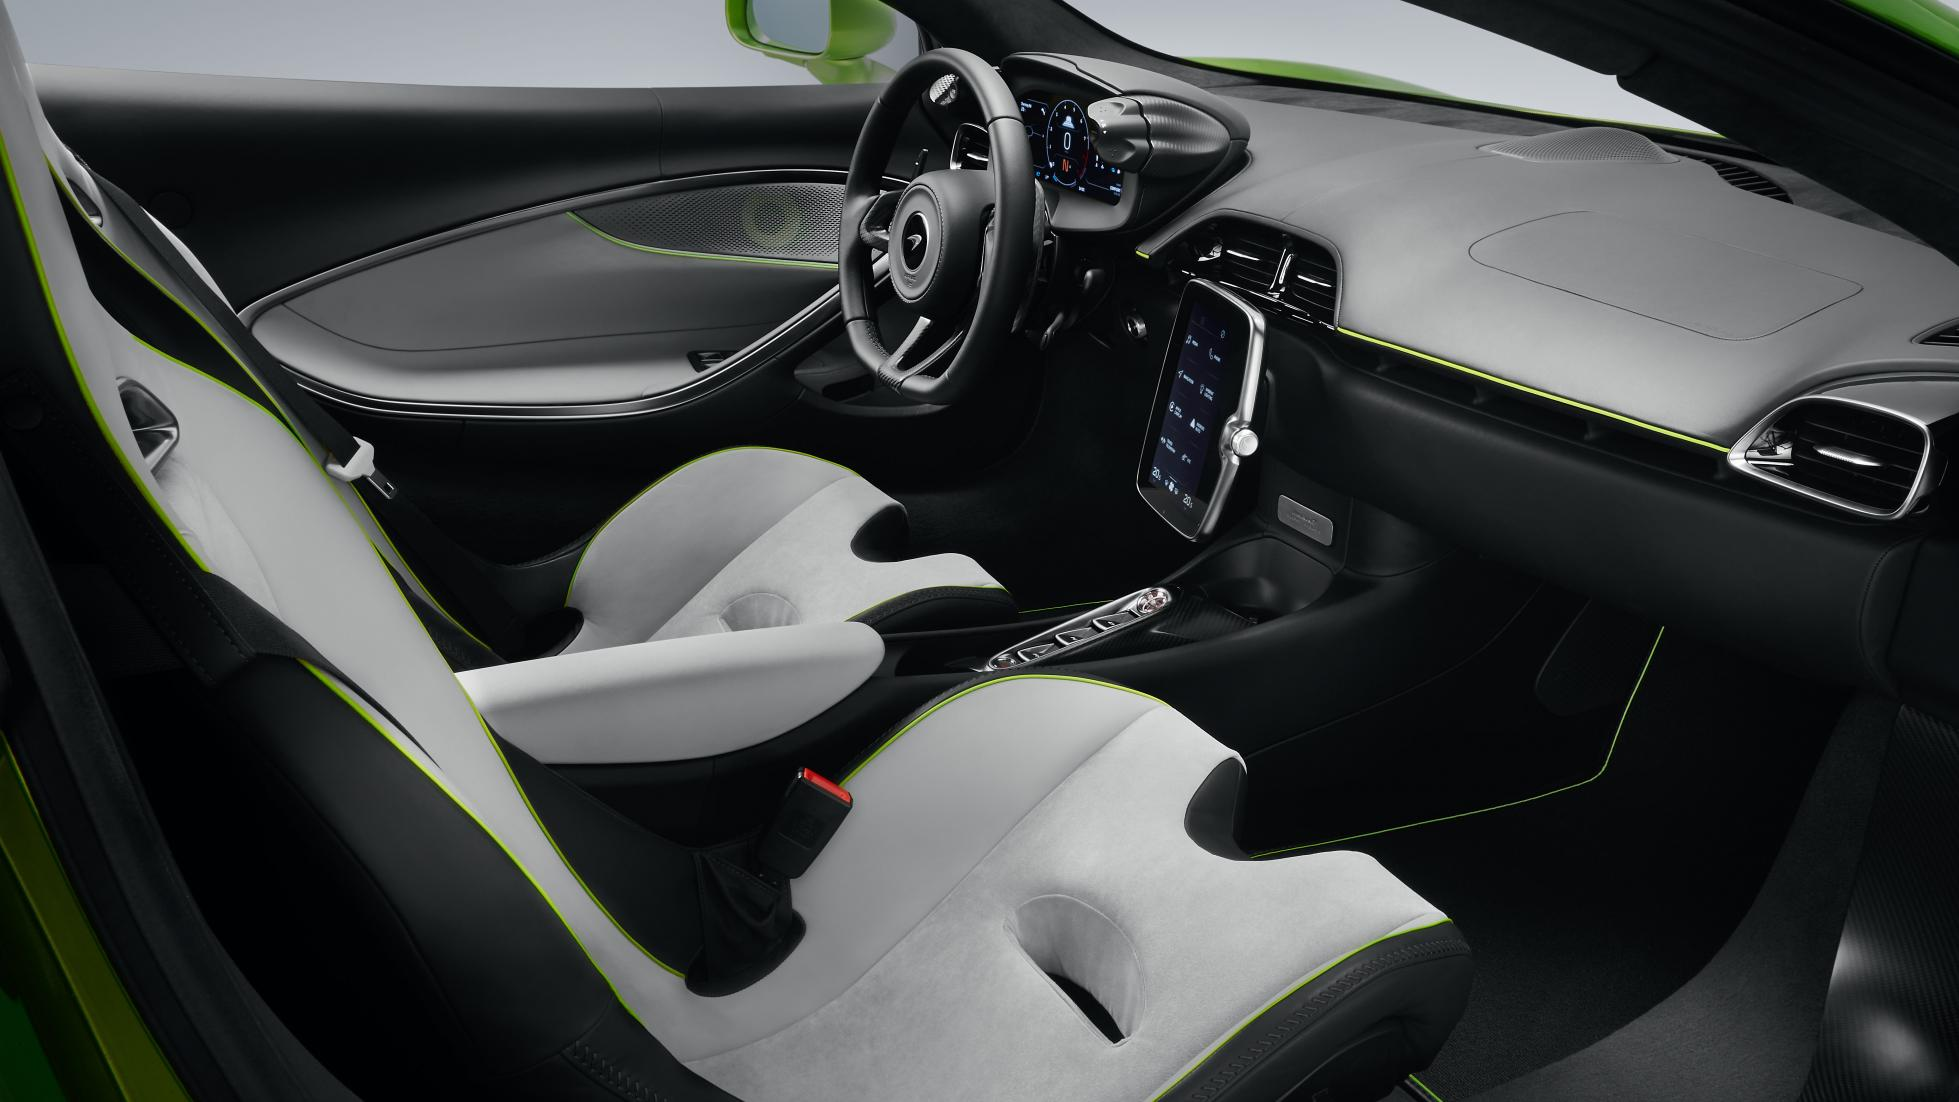 McLaren Artura in Flux Green passenger seats and dashboard